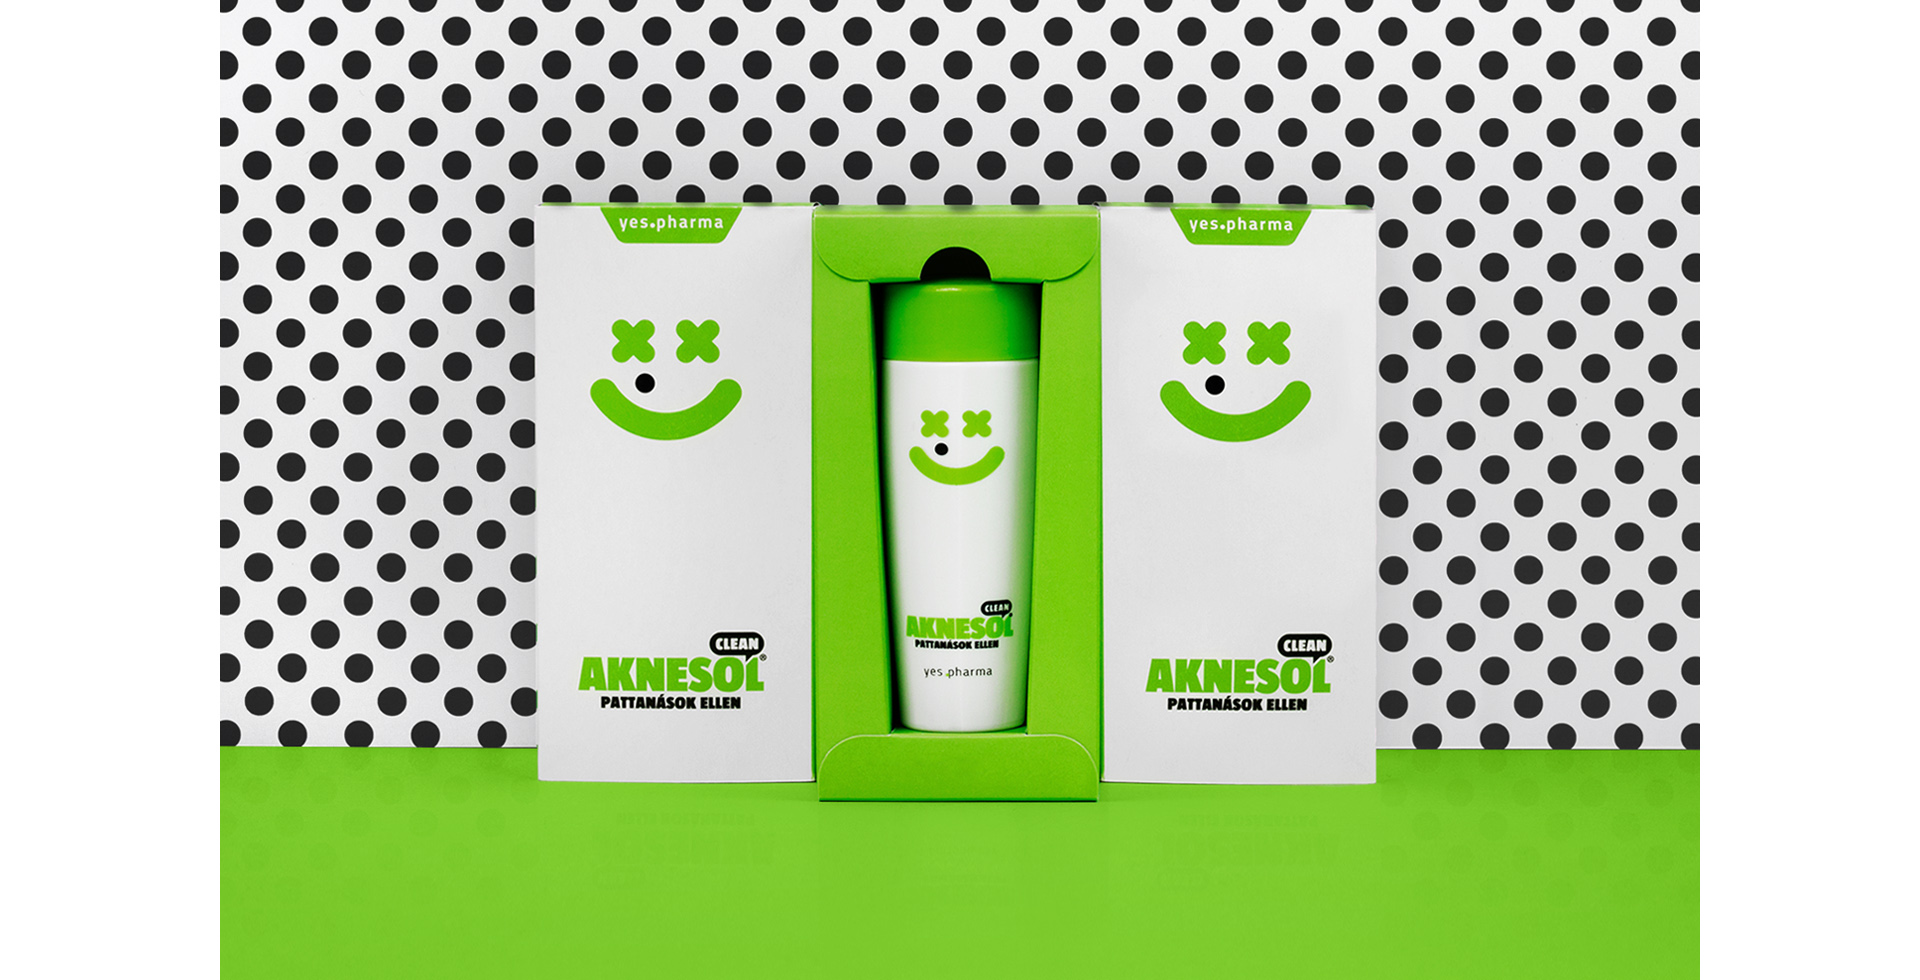 Aknesol Clean Package Design